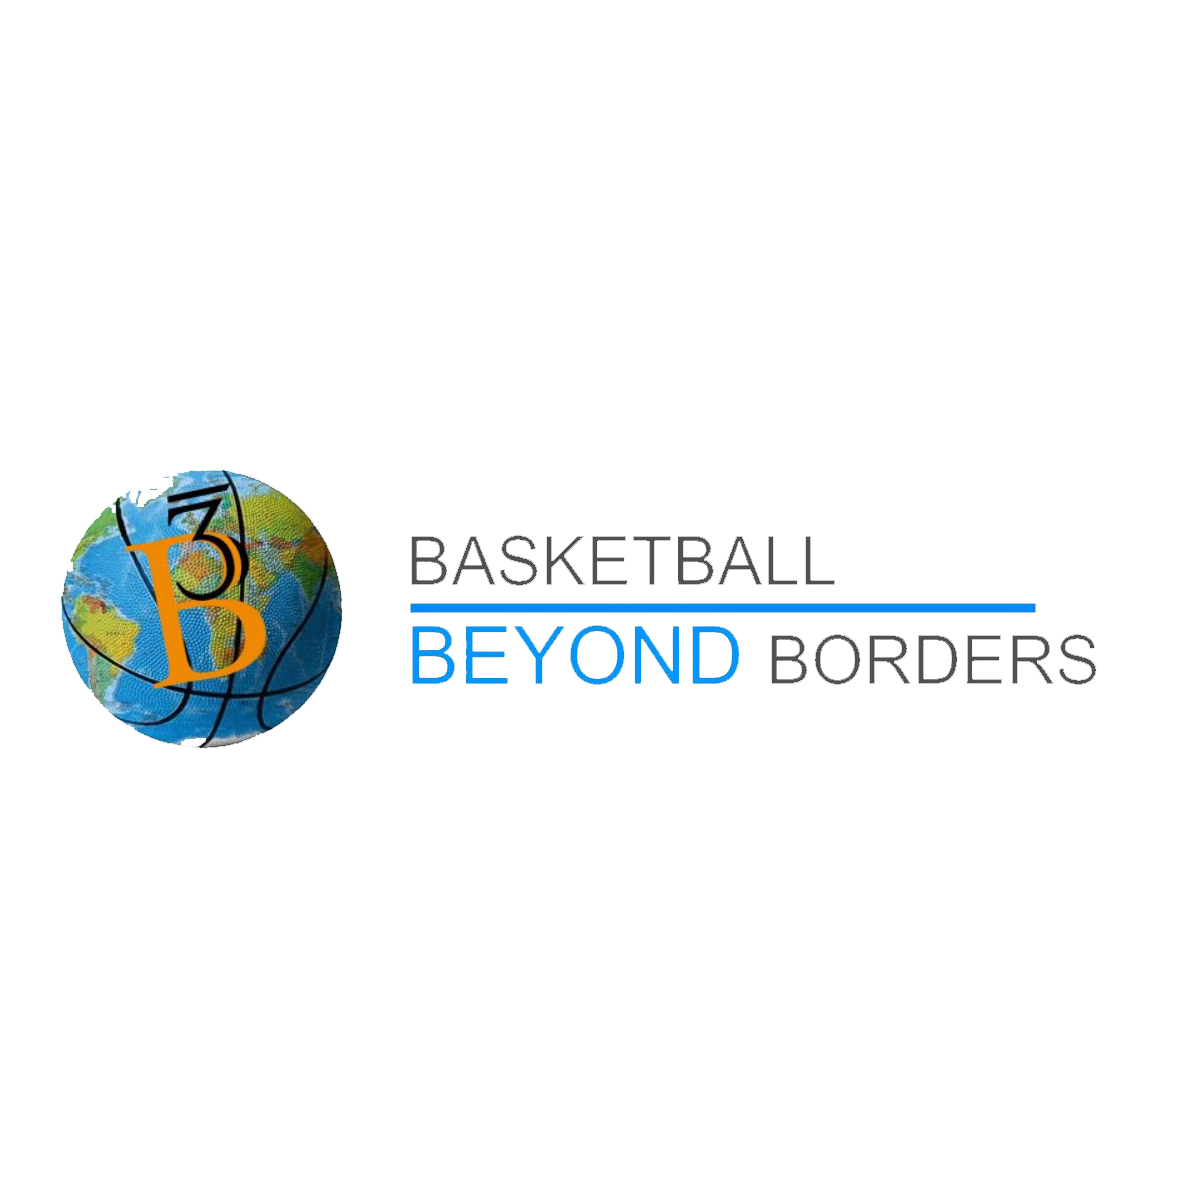 Basketball Beyond Borders